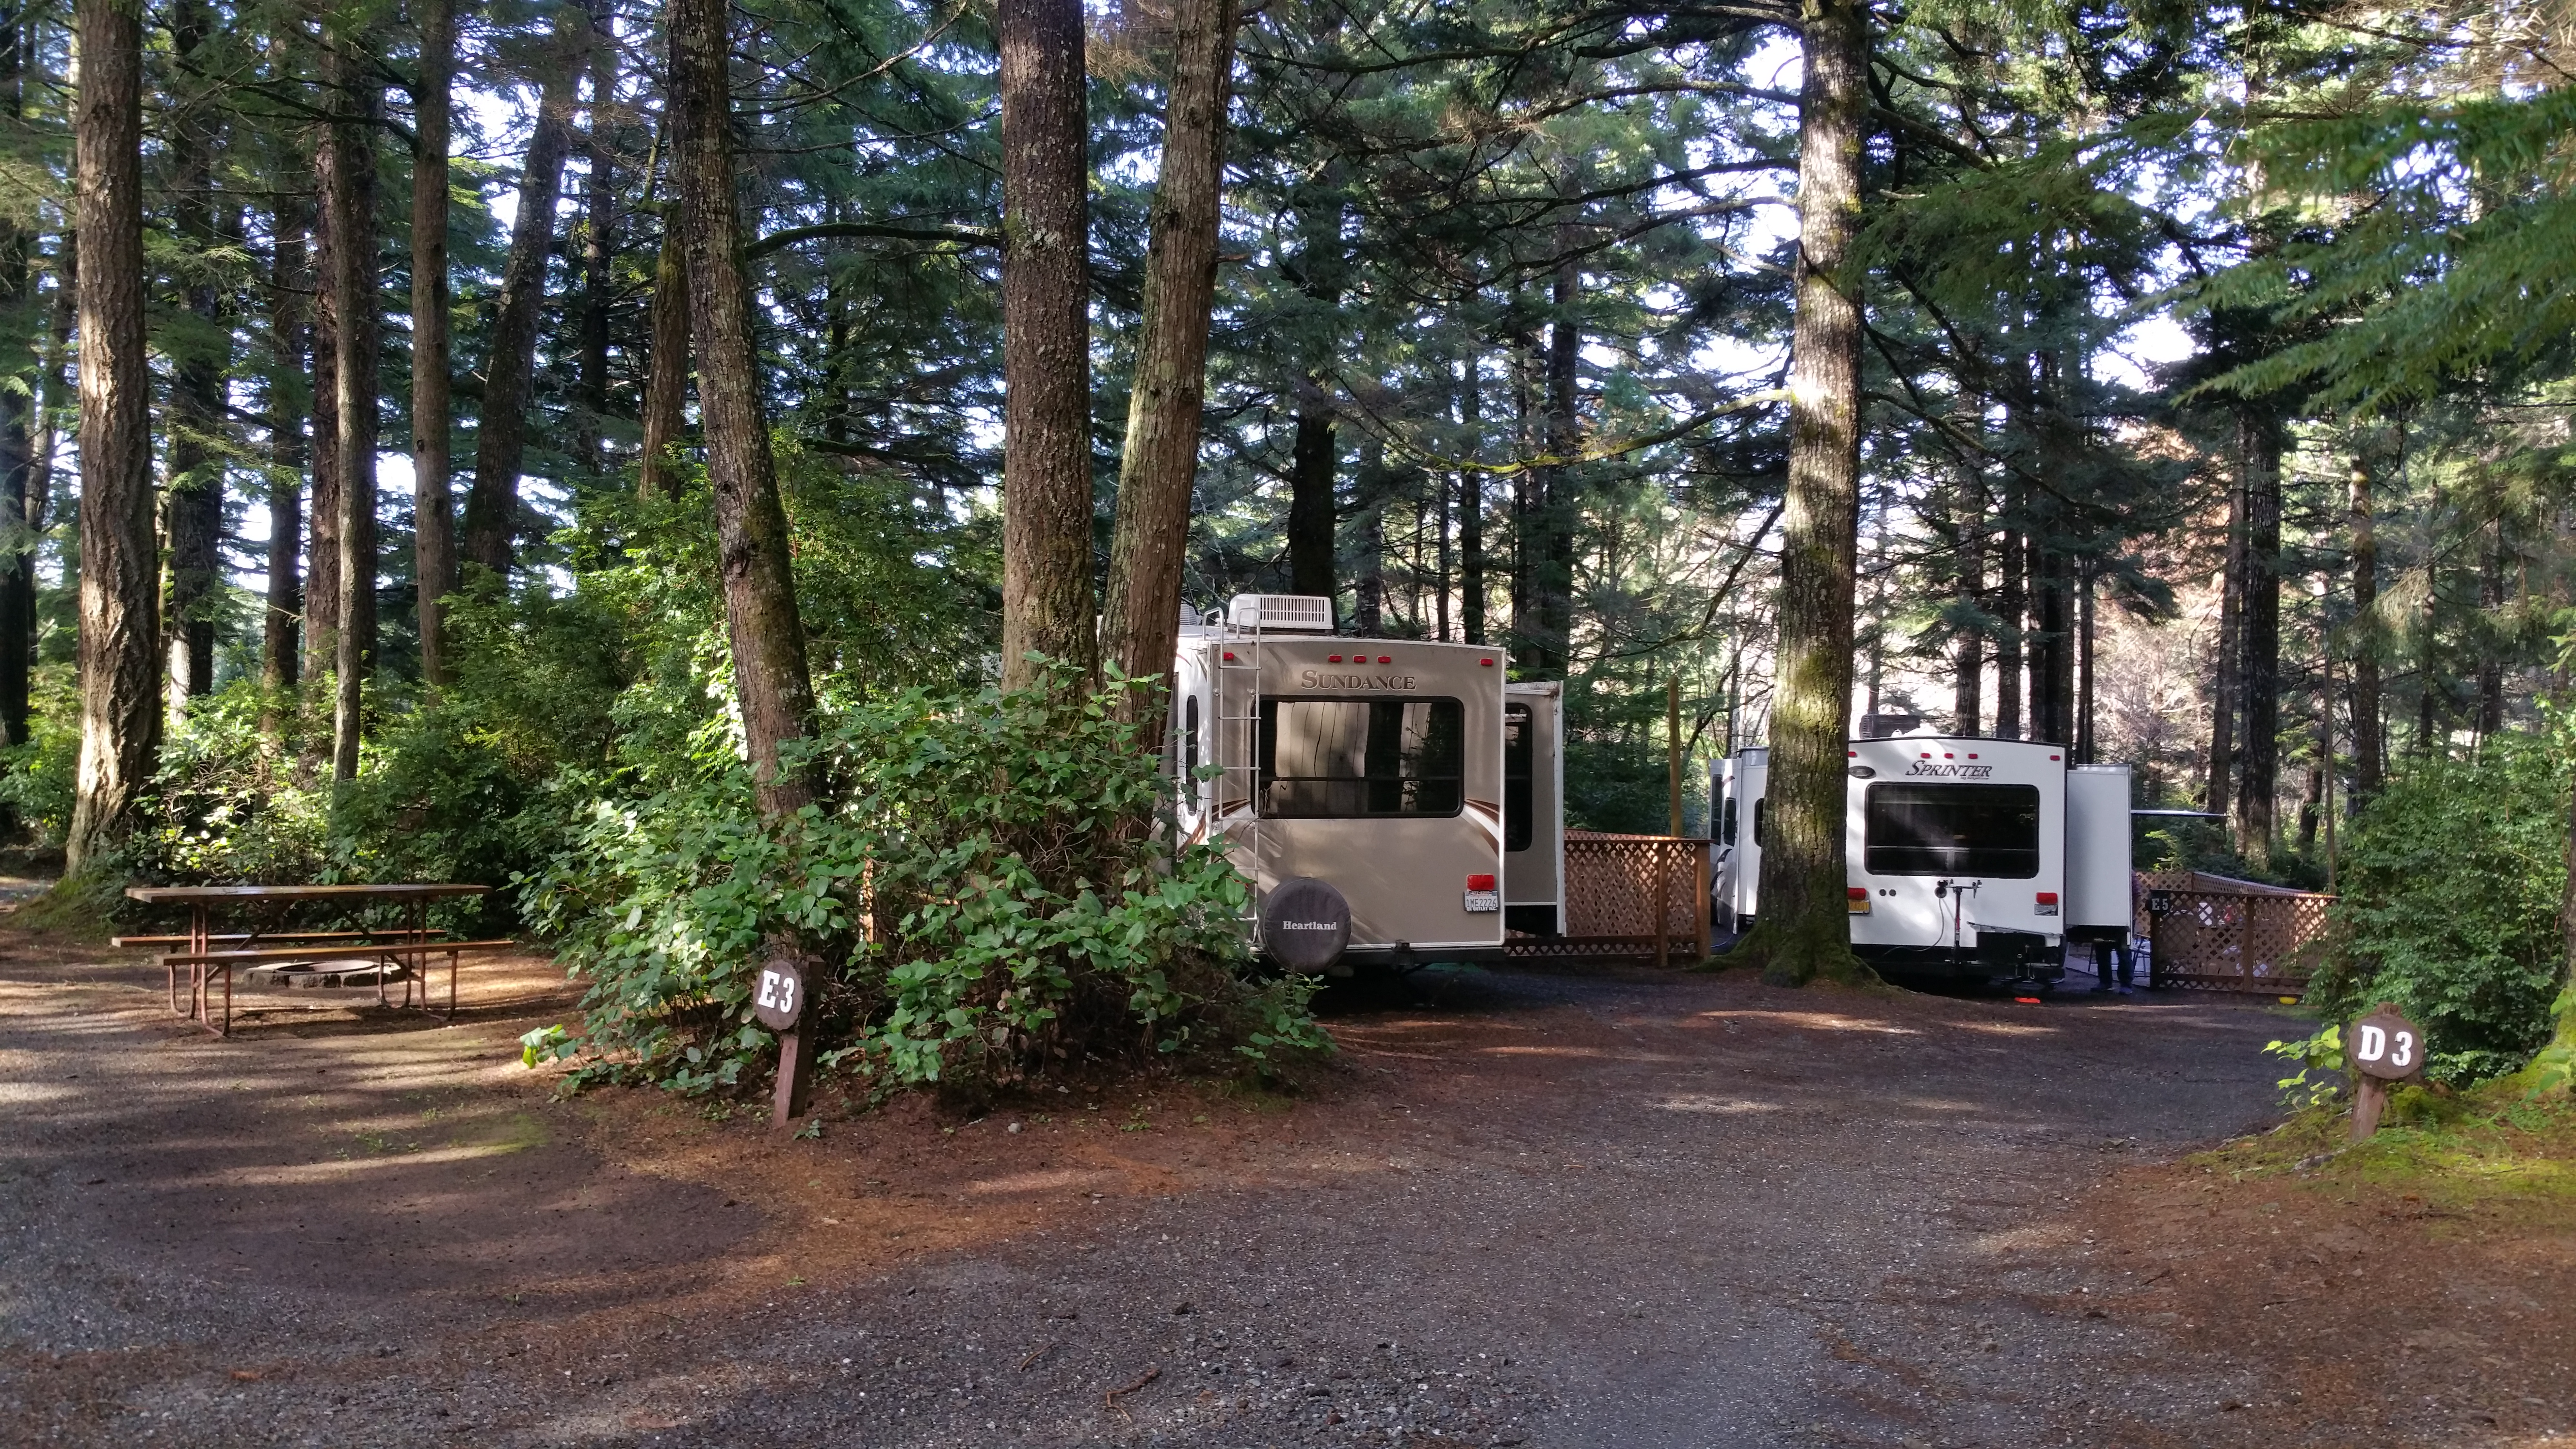 What does full hook up mean at an rv park